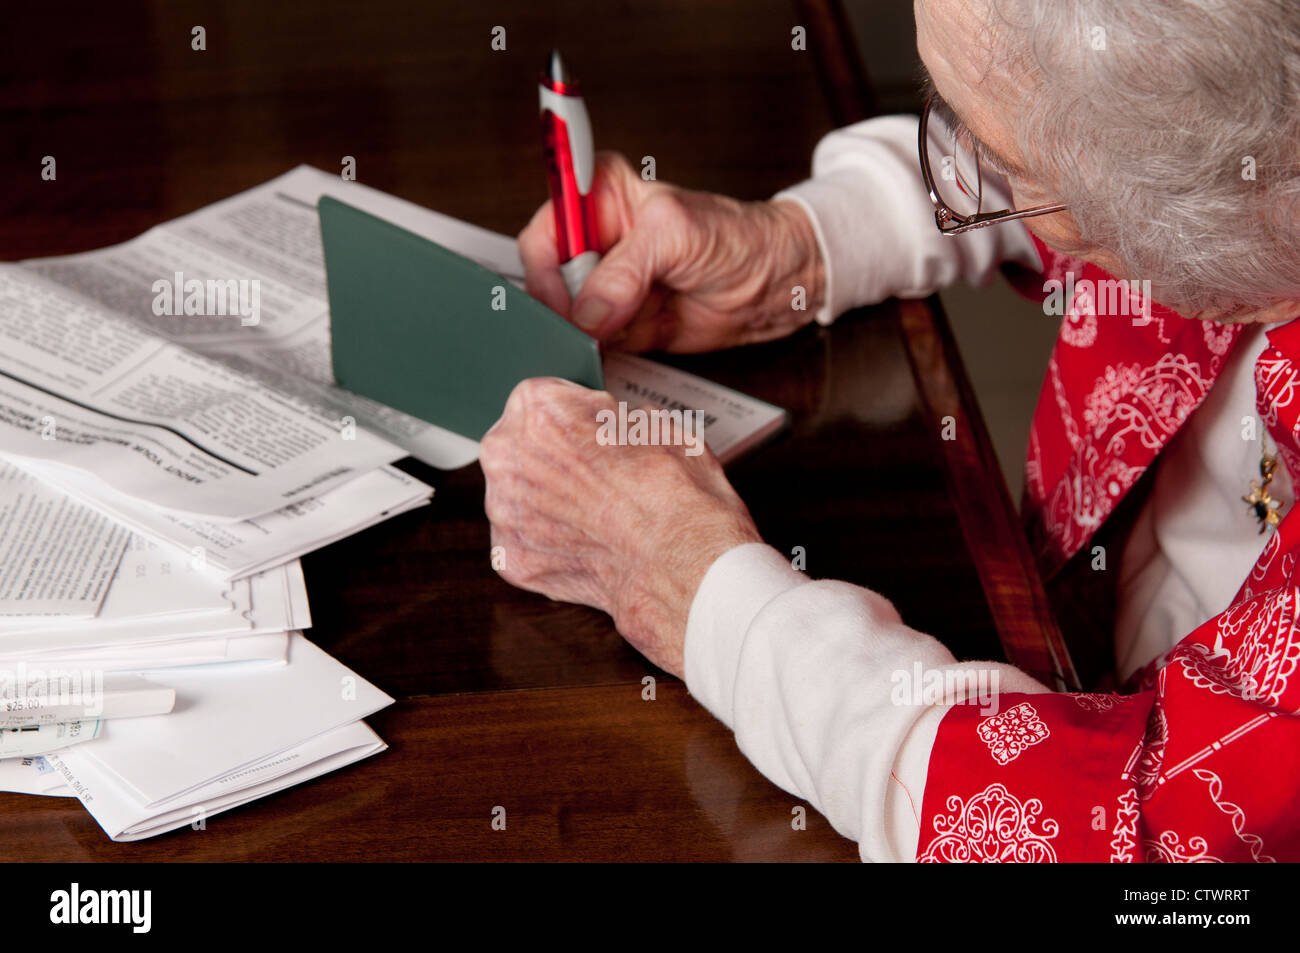 Elderly Woman Writing A Check And Paying Personal Finance Bills